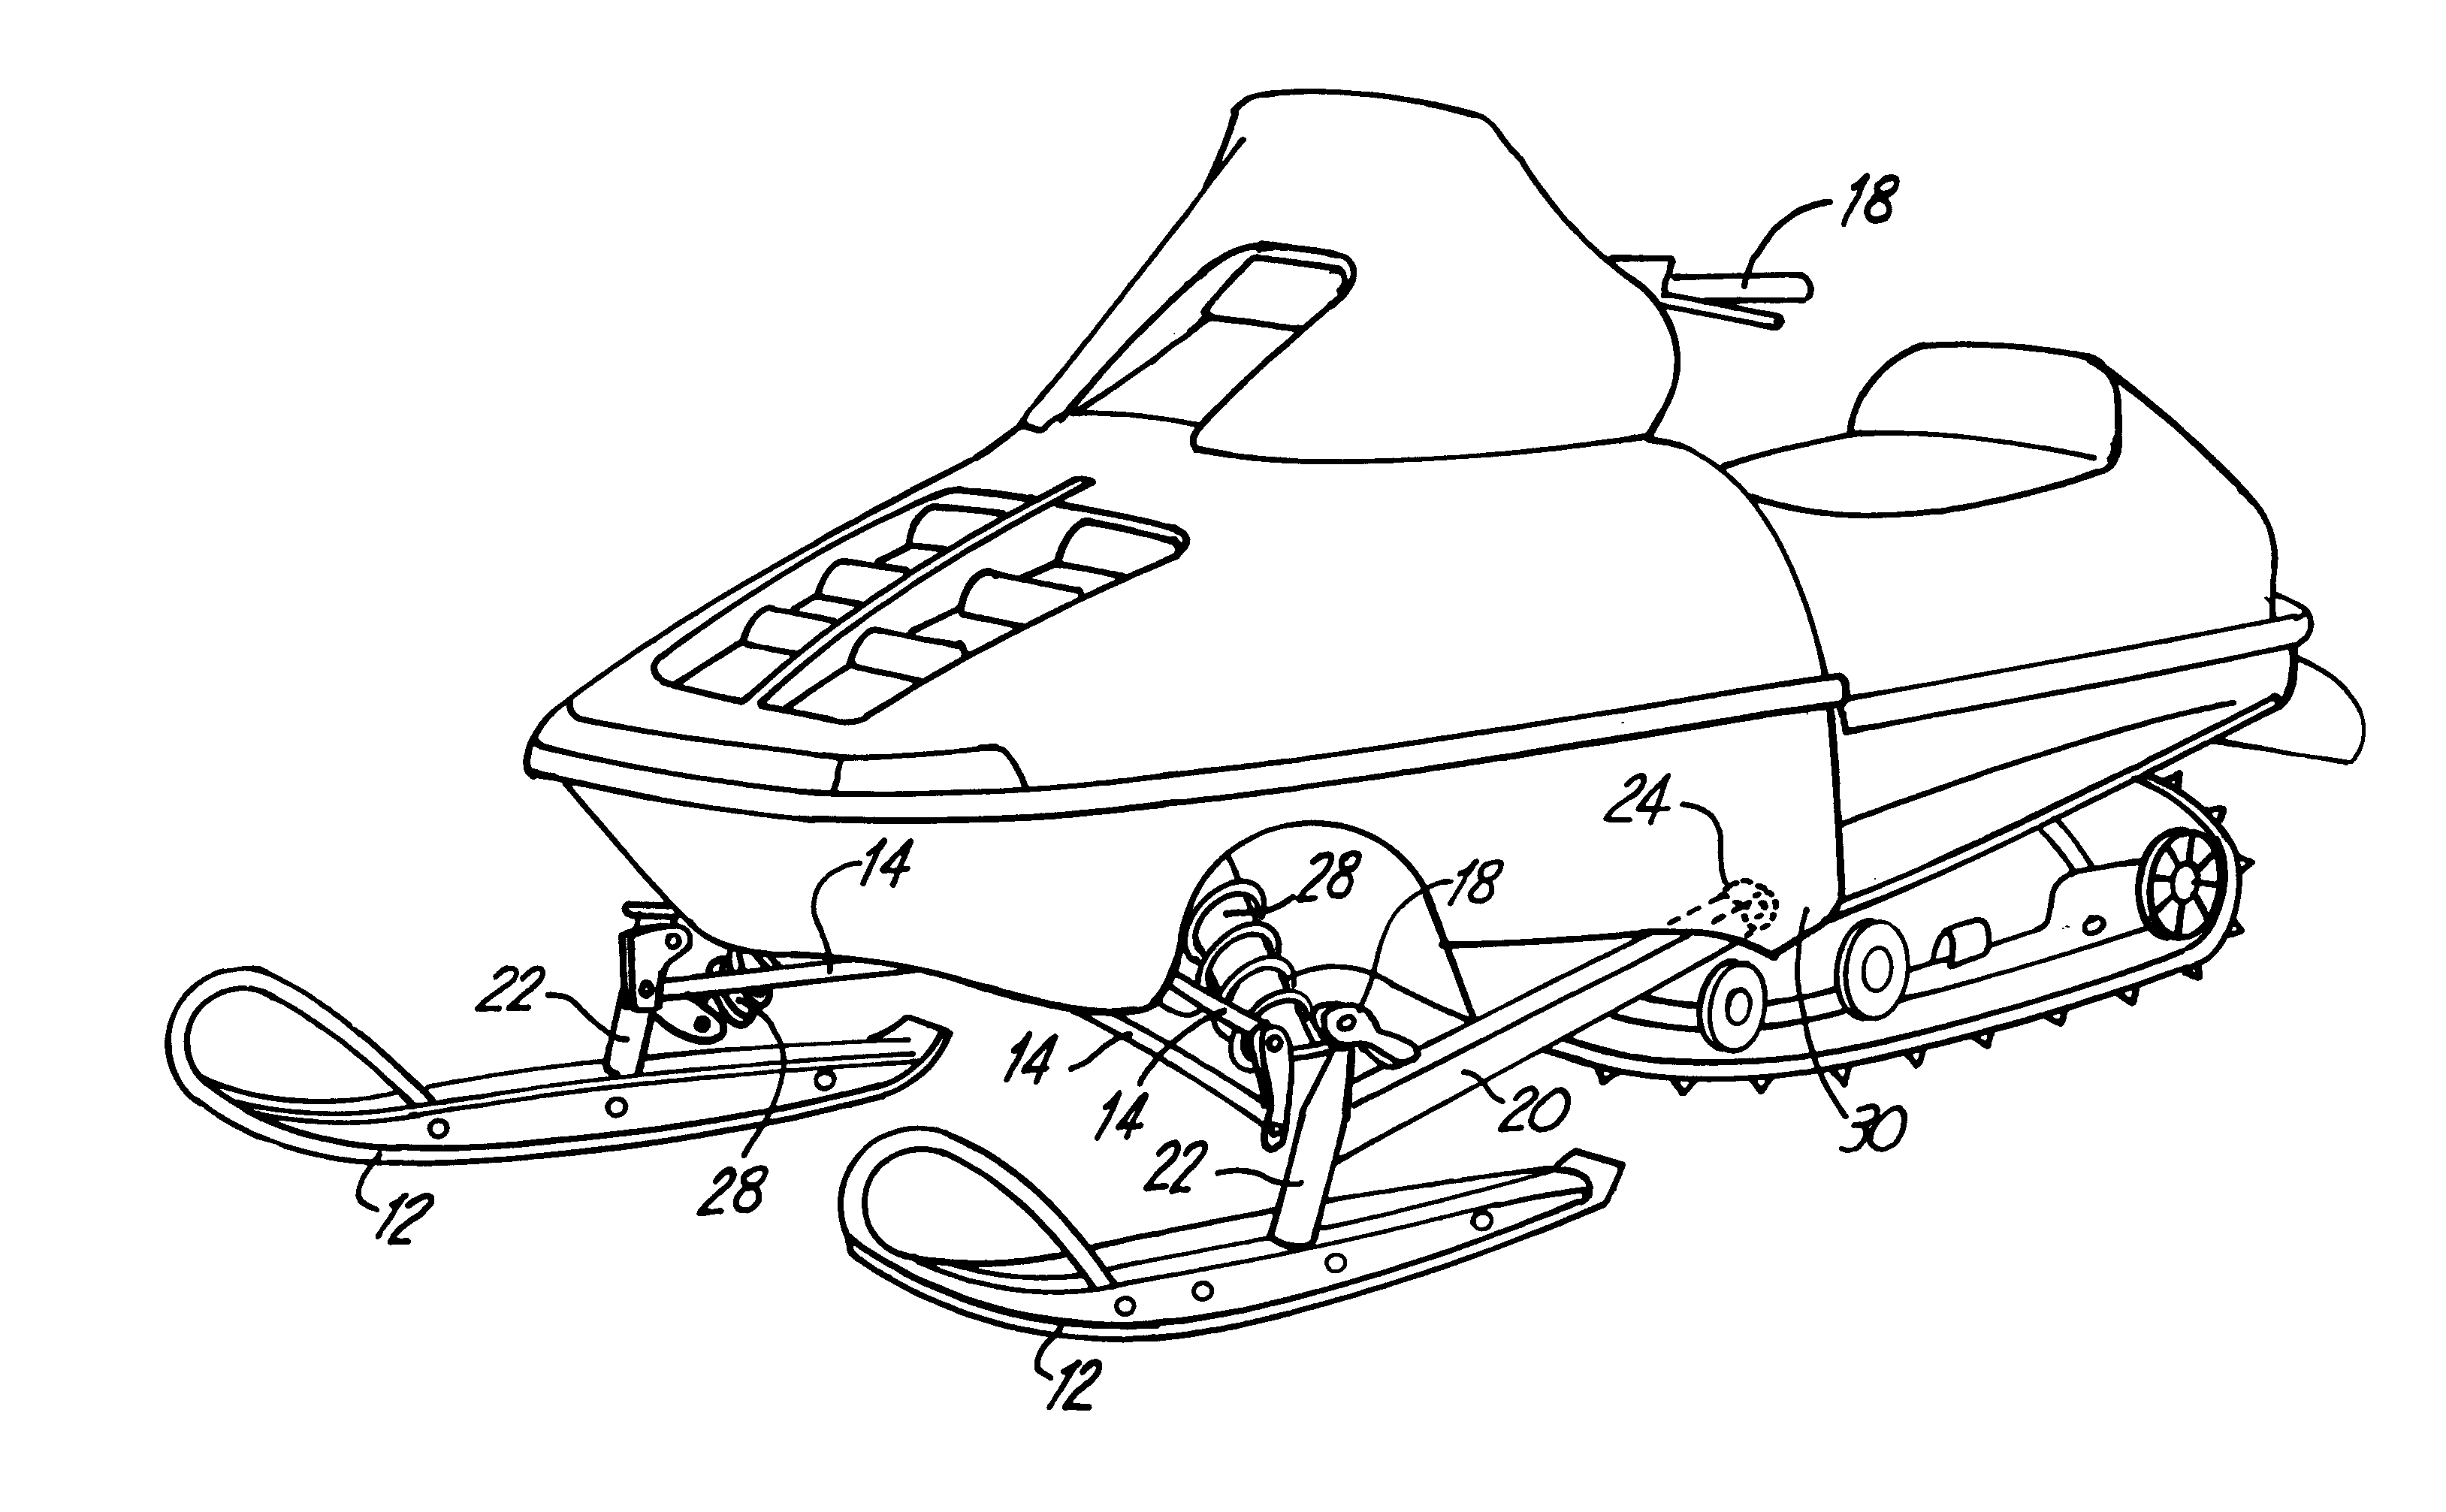 snowmobile coloring pages - photo#20